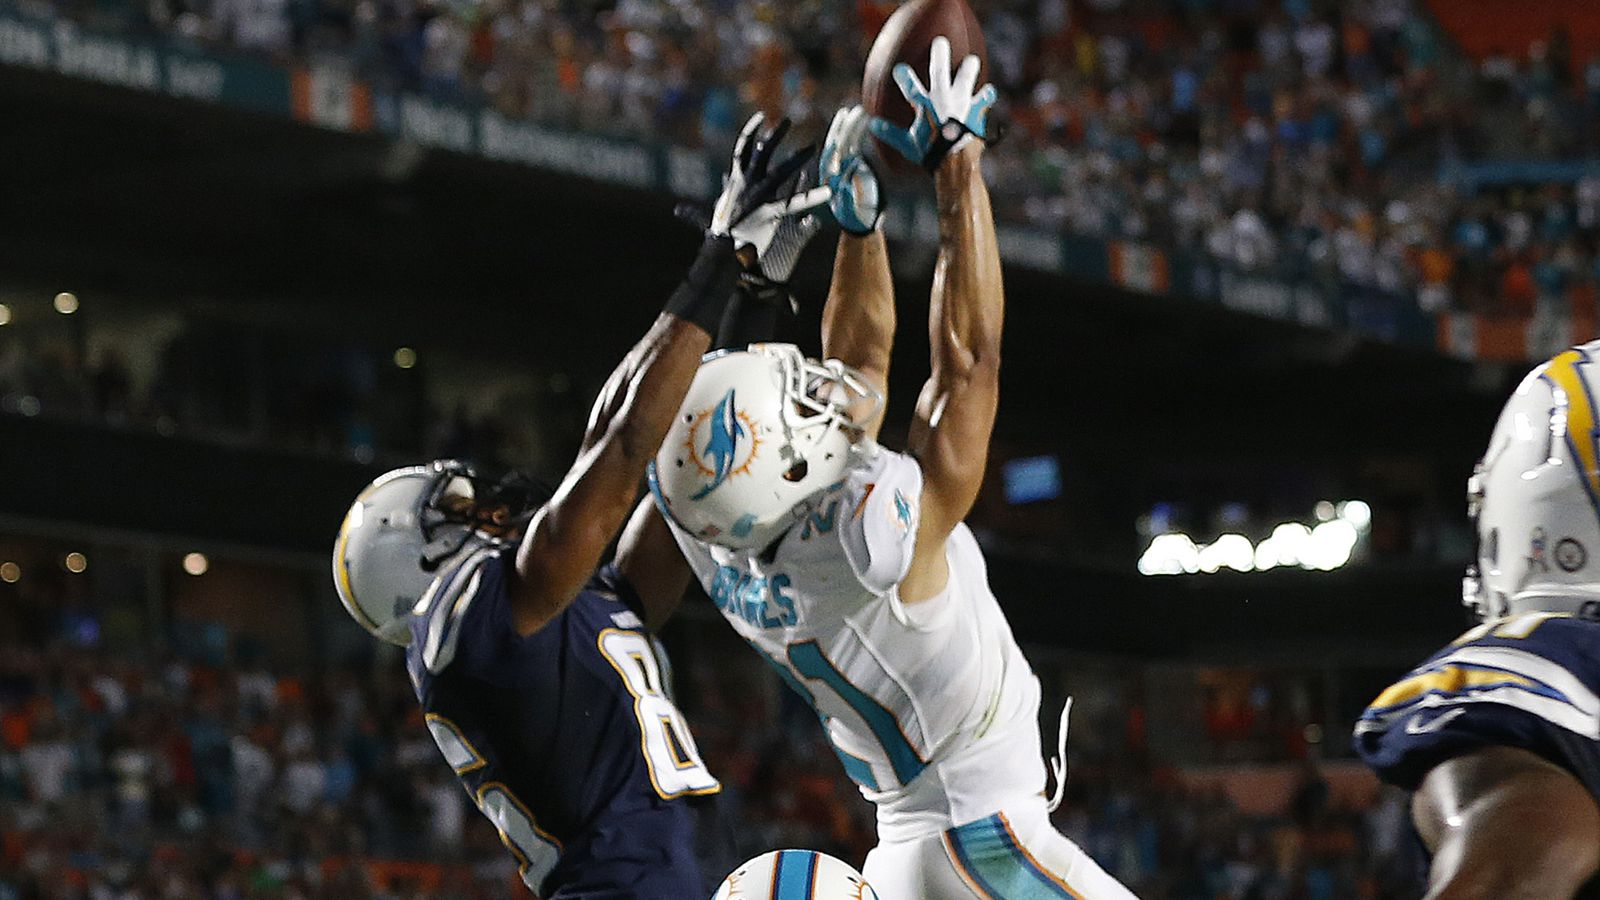 NFL Top 100 Players 2014: Brent Grimes at 95 - The Phinsider